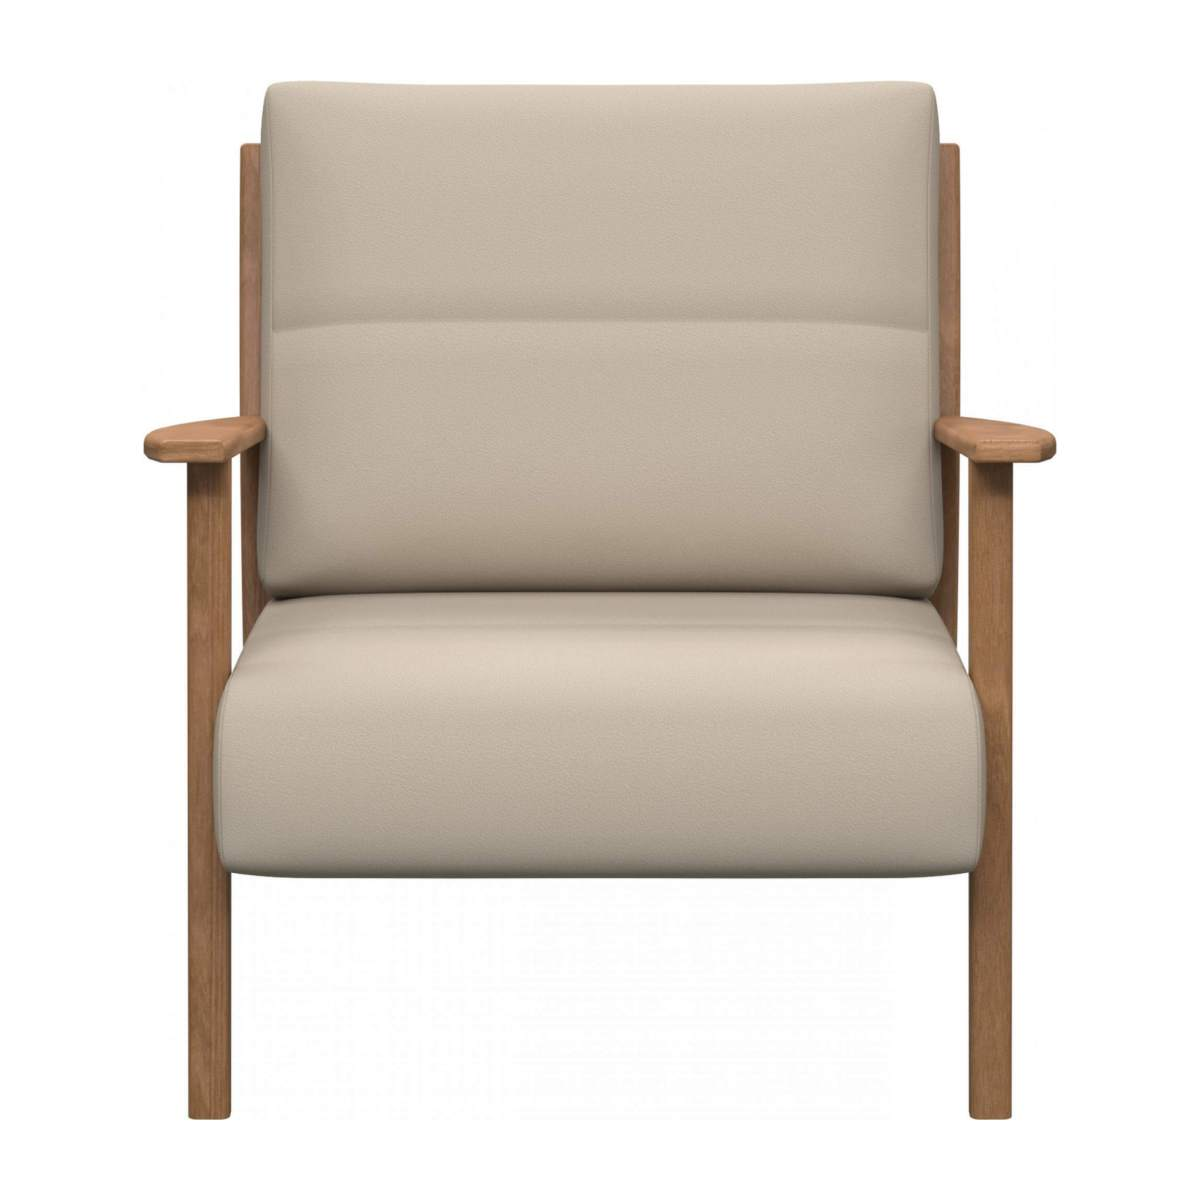 Armchair in Savoy semi-aniline leather, off white n°1